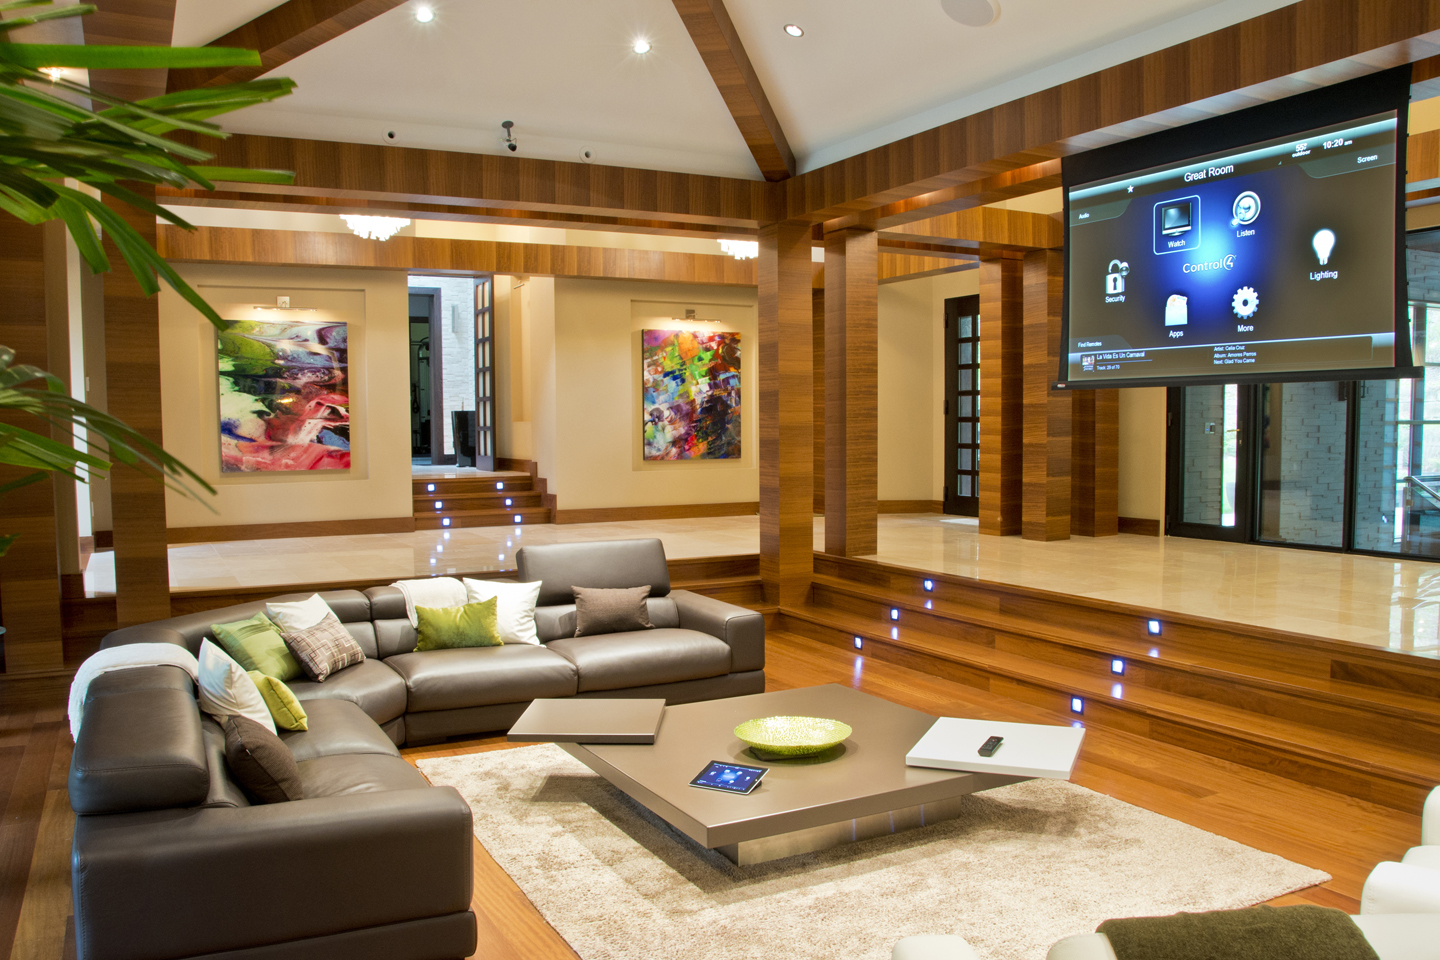 Premier Smart Homes Take Control Wiring For New Whole Home Automation